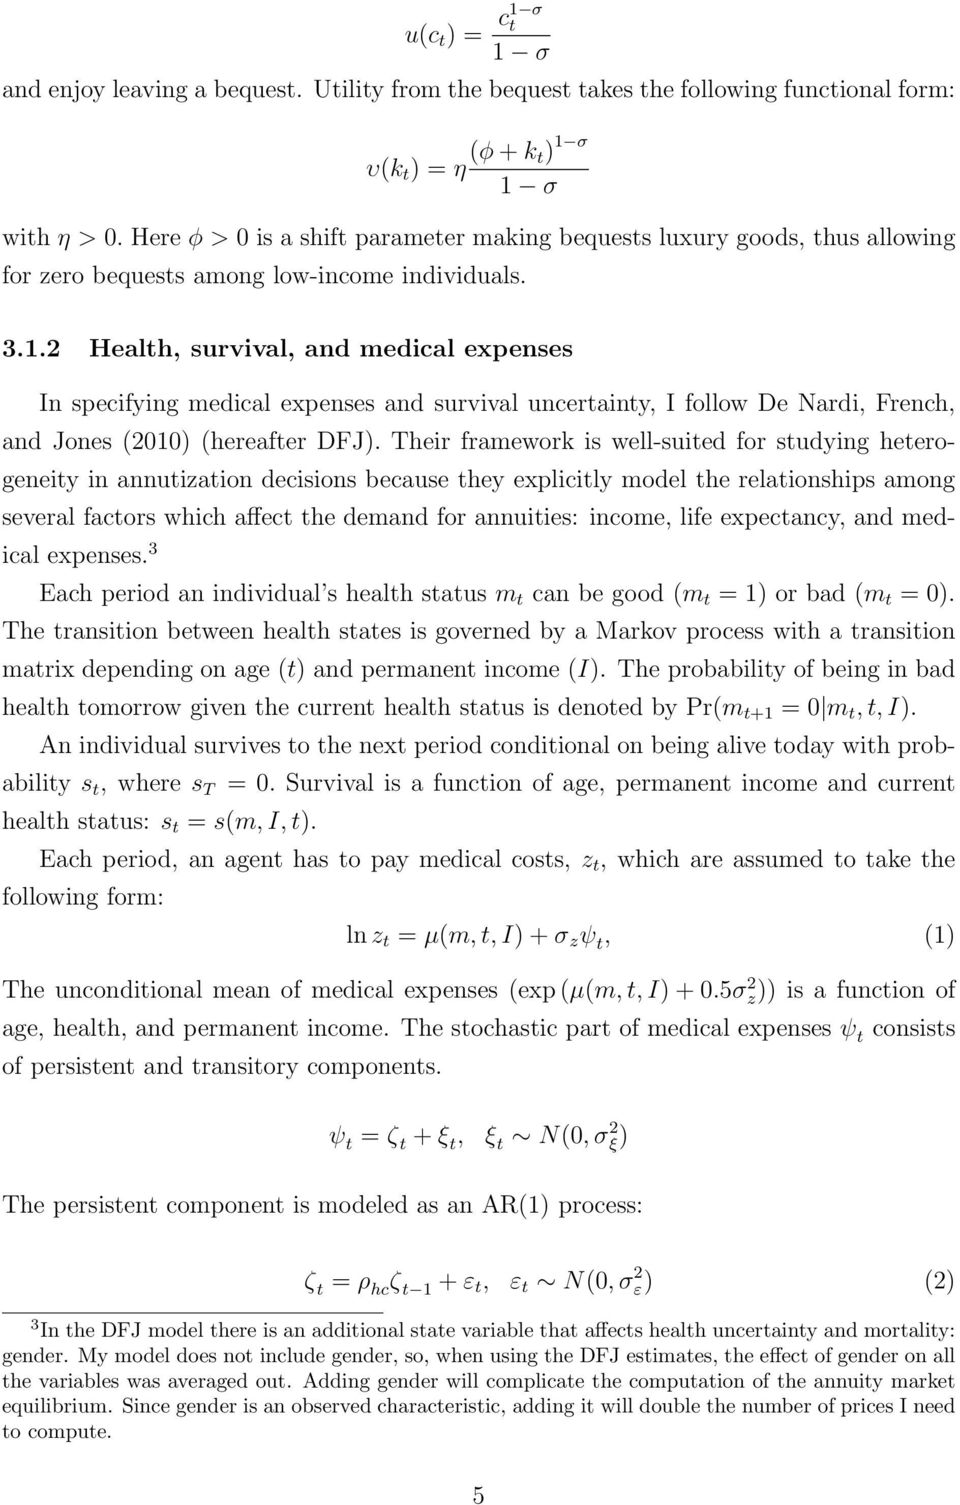 2 Health, survival, and medical expenses In specifying medical expenses and survival uncertainty, I follow De Nardi, French, and Jones (2010) (hereafter DFJ).